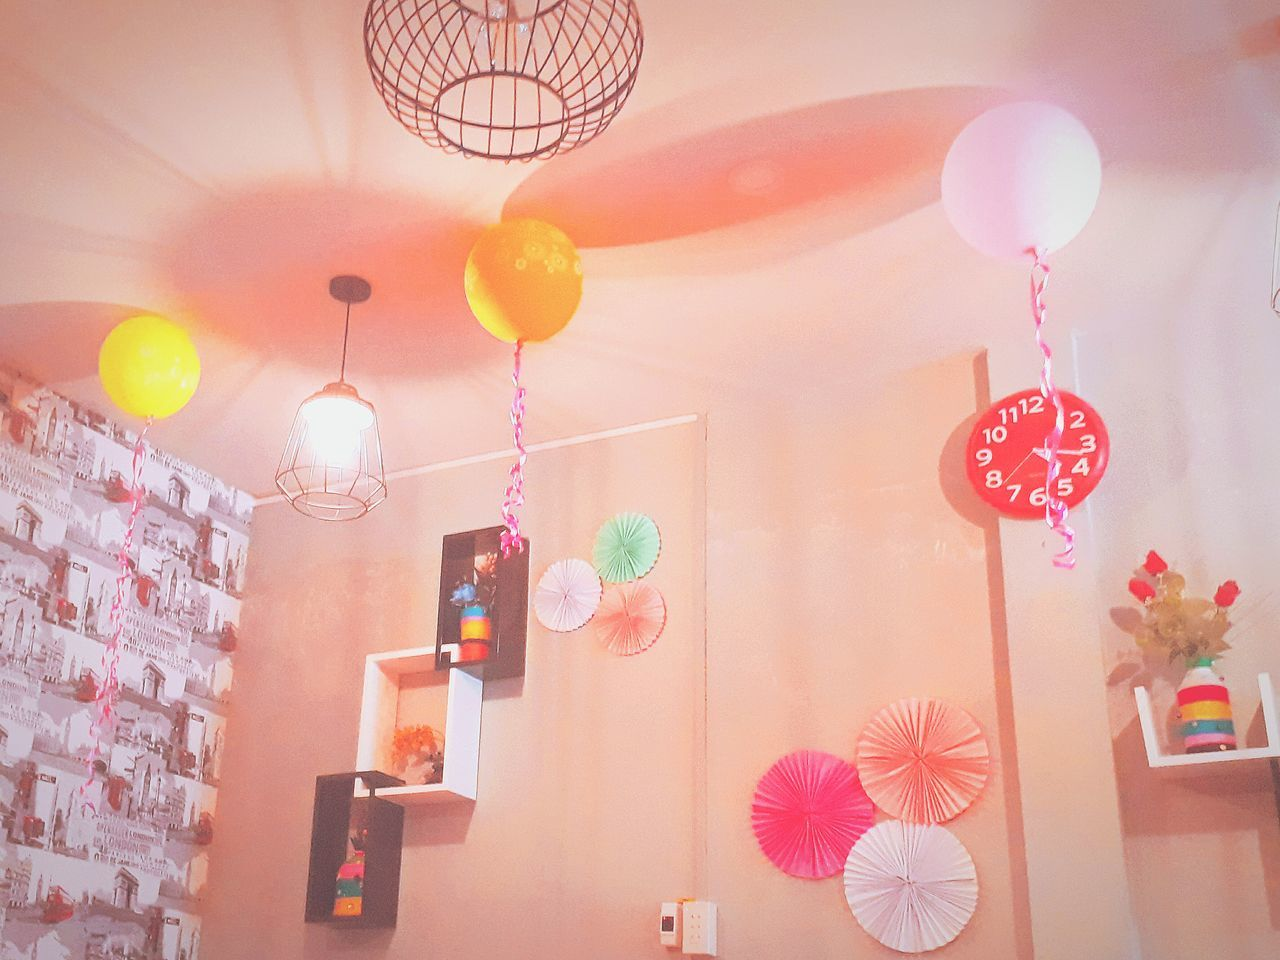 hanging, indoors, multi colored, lighting equipment, no people, low angle view, large group of objects, home interior, variation, balloon, illuminated, close-up, day